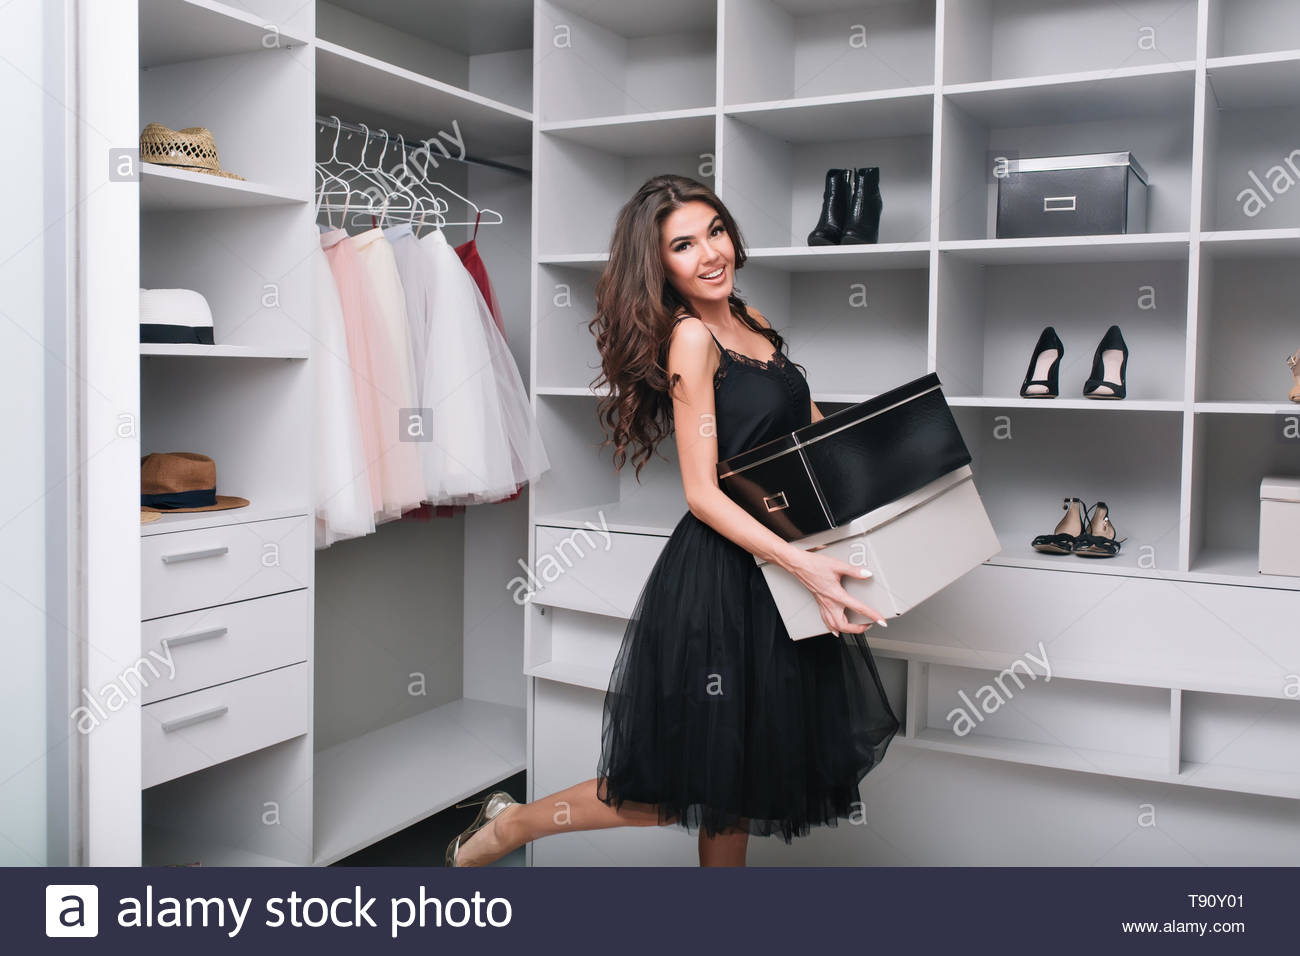 Attractive happy young woman just bought new shoes, holding boxes in hands, standing in dressing room, wardrobe. She's smiling and looking to camera. She wearing in black dress with fluffy skirt. - Stock Image